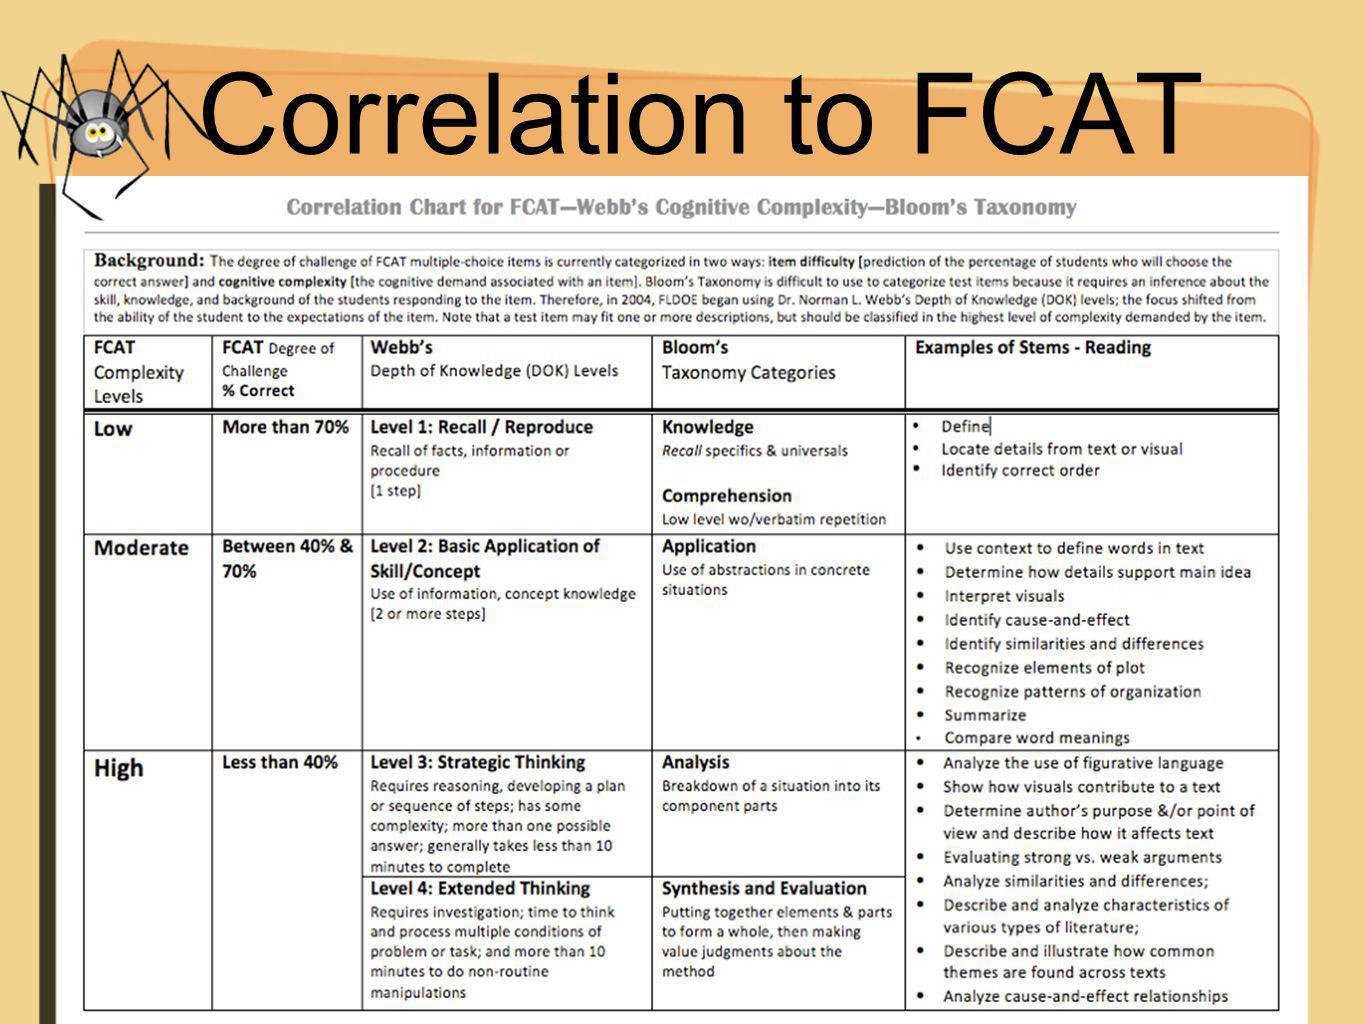 Correlation to FCAT